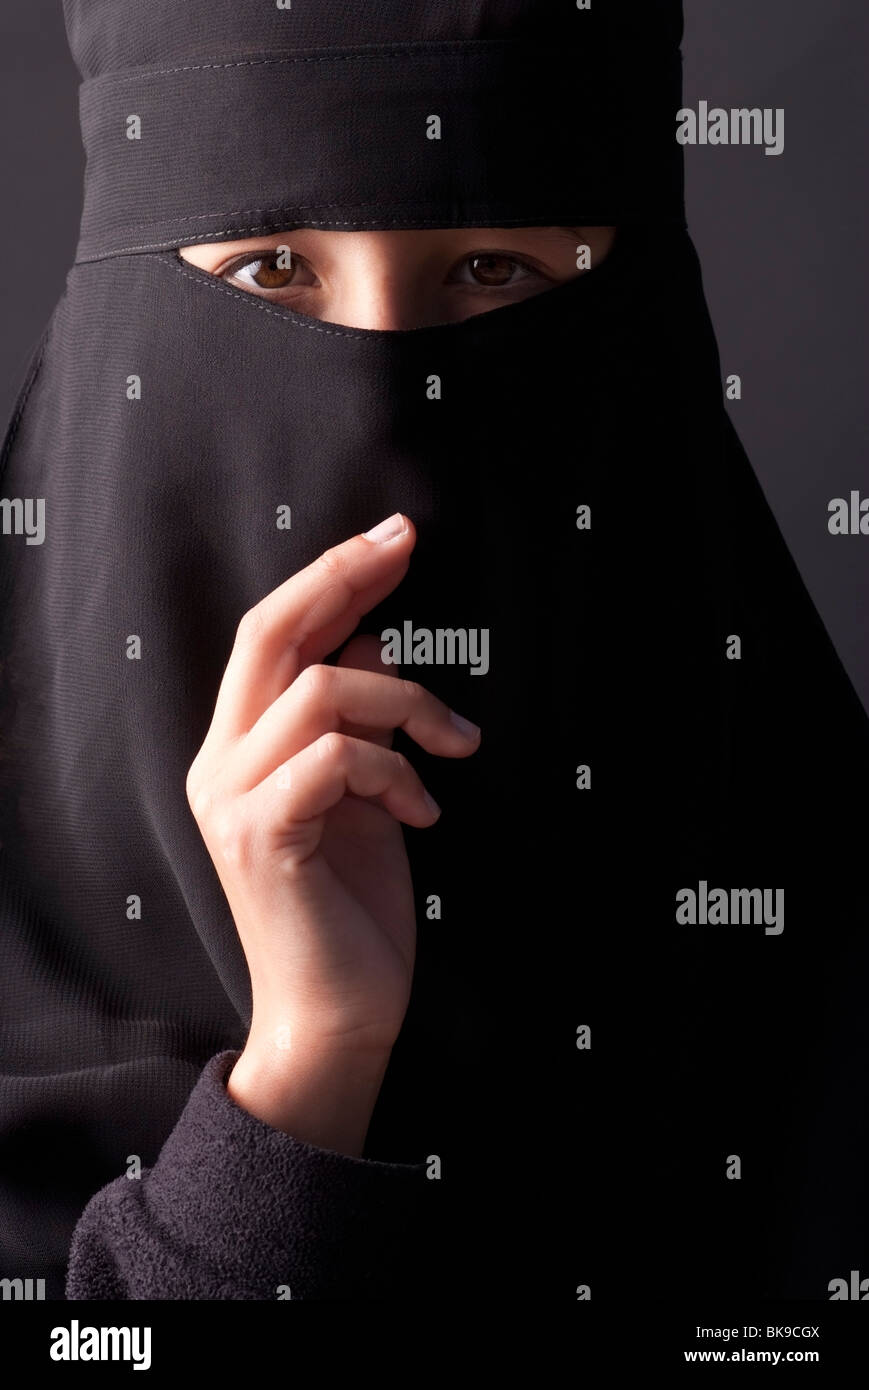 Teenage girl wearing a traditional Muslim niqab, a head covering with a veil that covers the face. - Stock Image